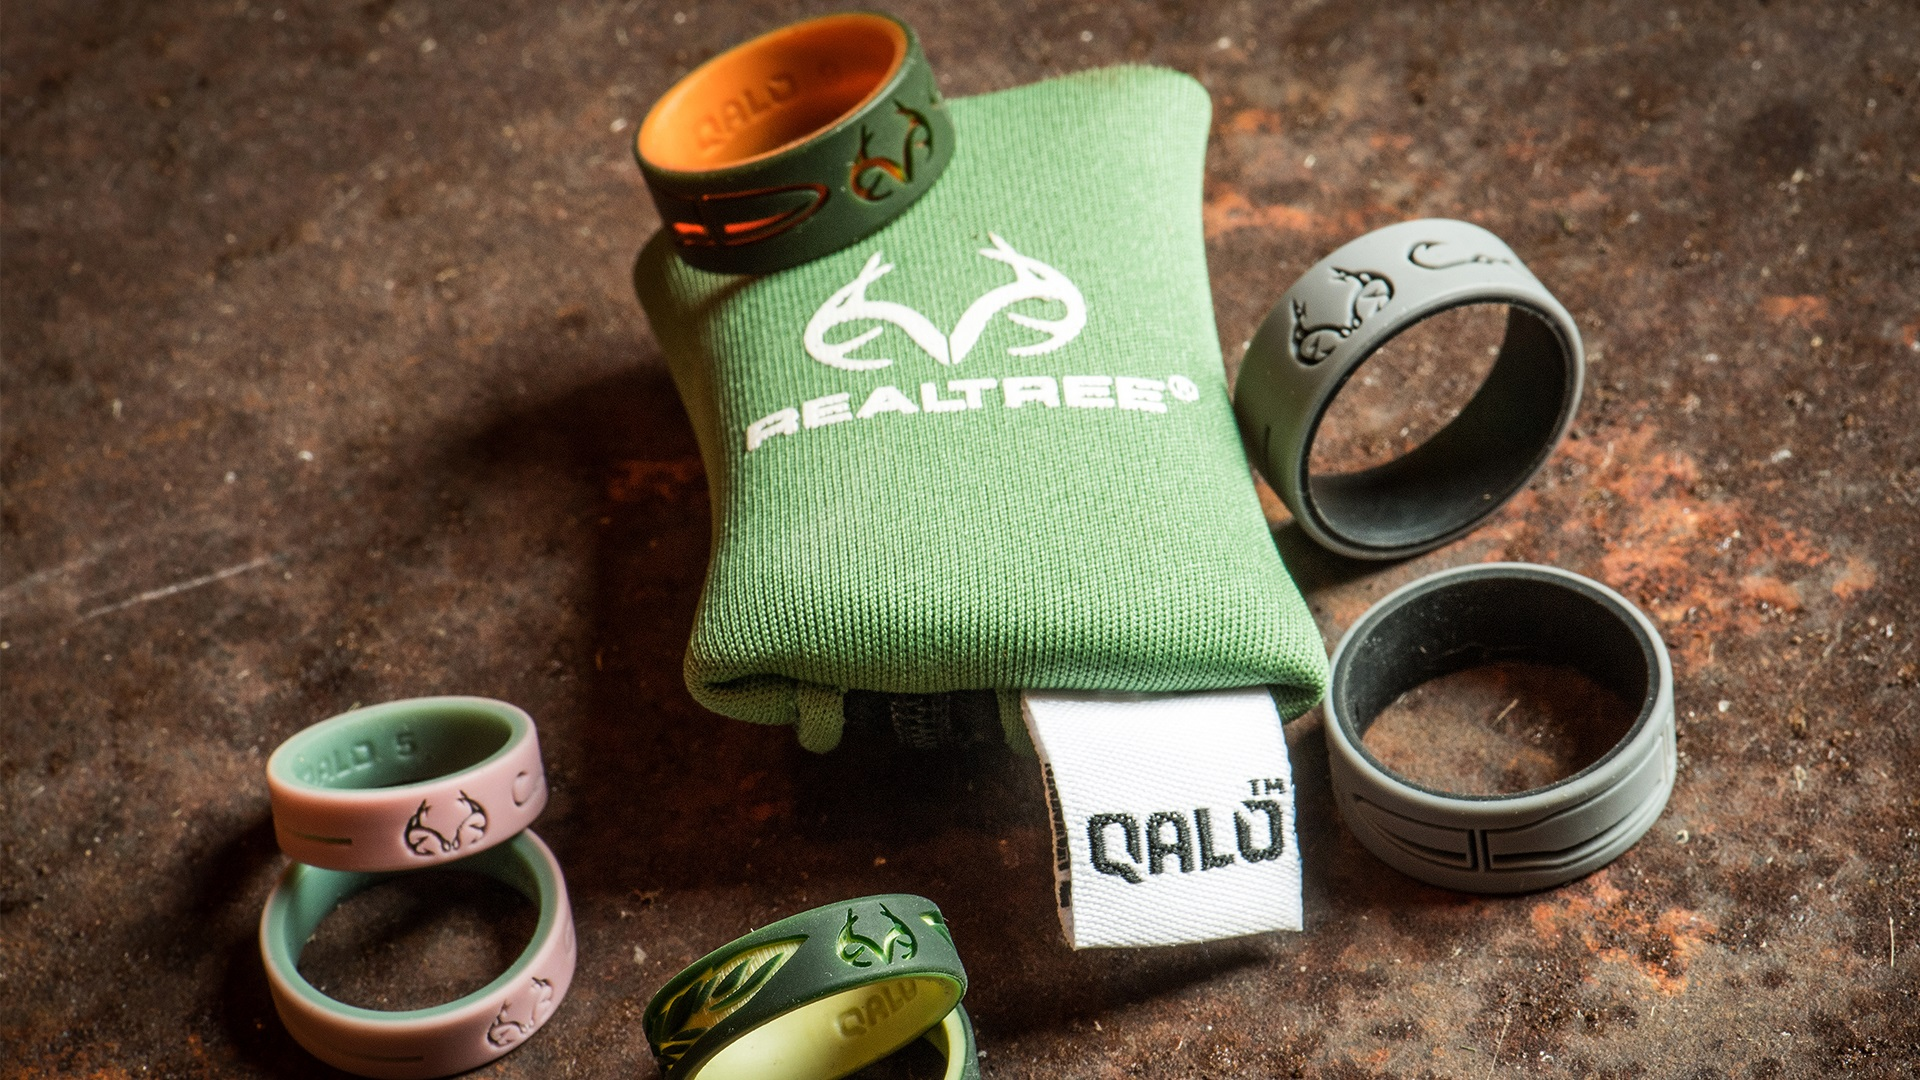 QALO Womens Realtree Strata Silicone Wedding Ring Collection